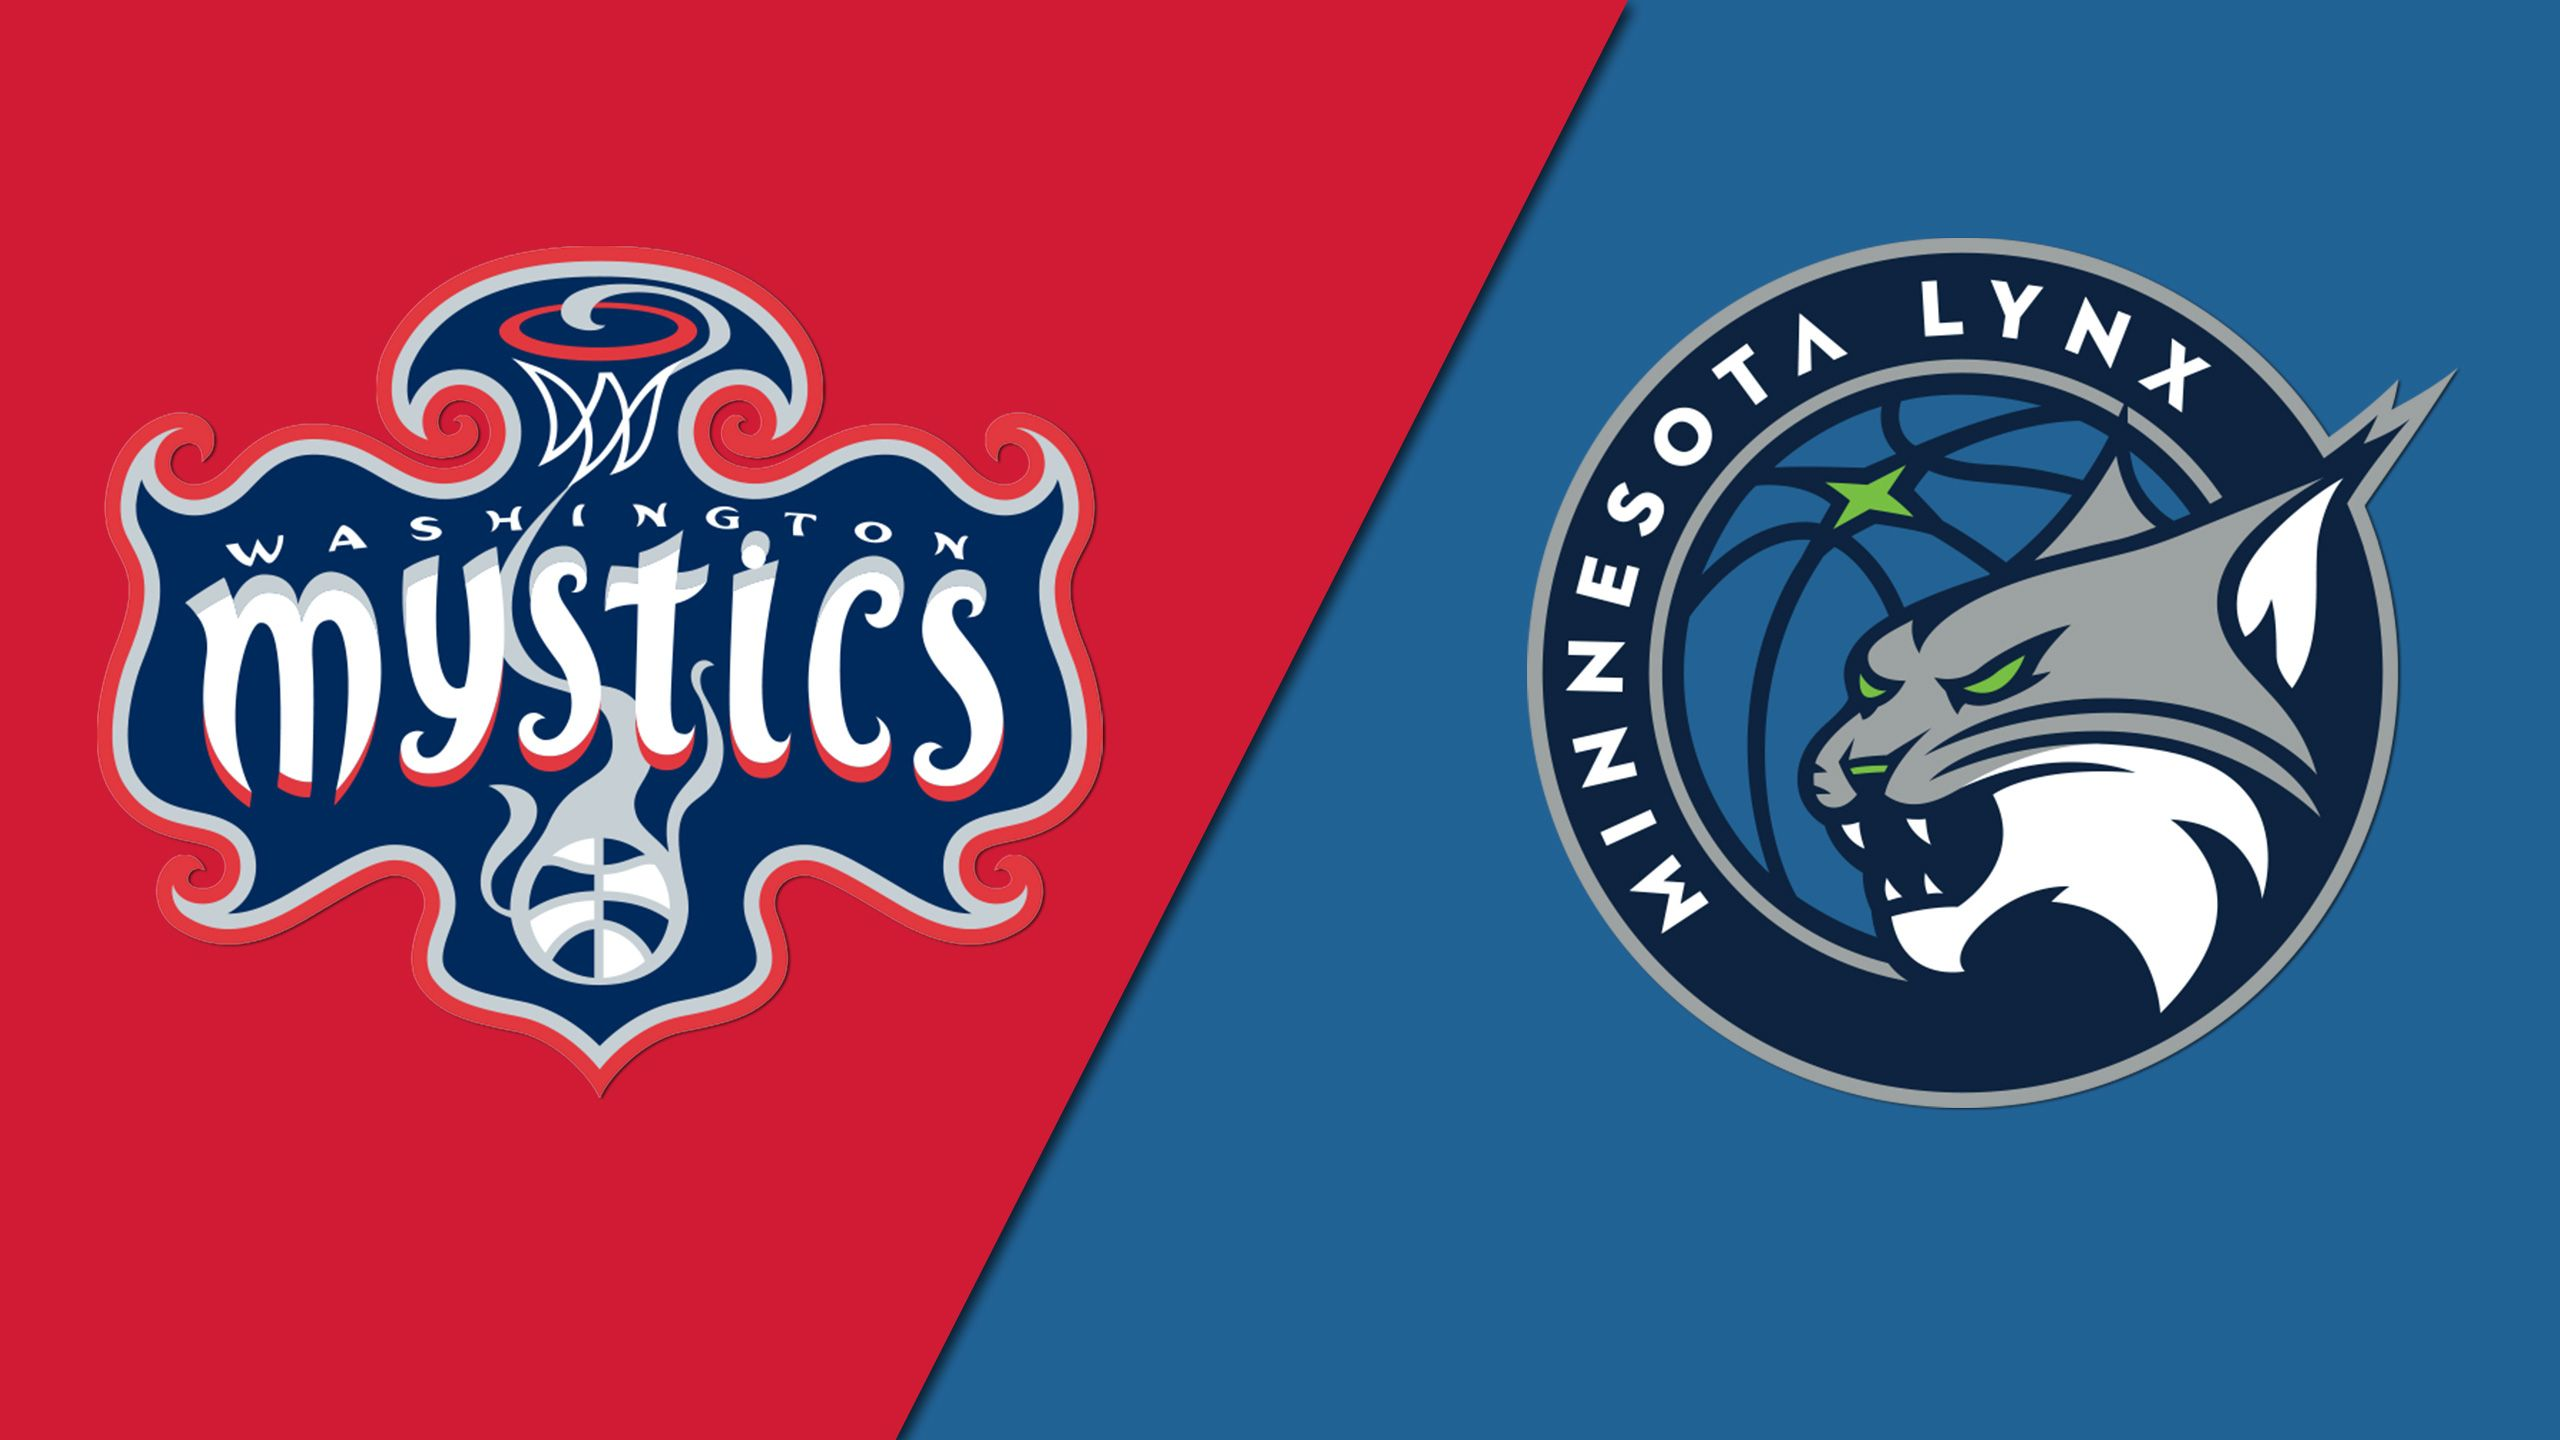 Washington Mystics vs. Minnesota Lynx